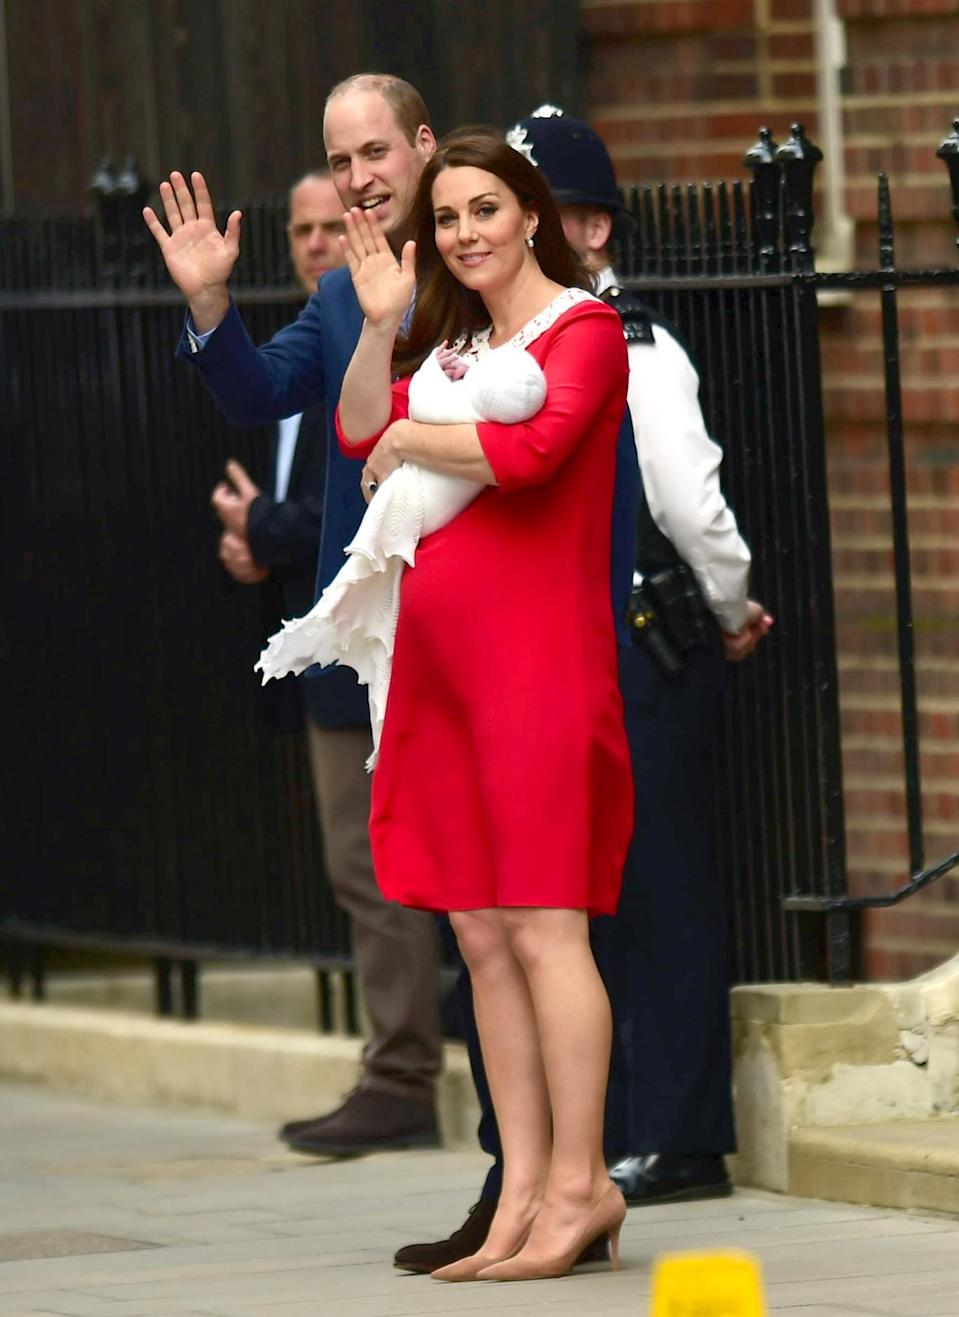 The Duchess of Cambridge was wearing a red Jenny Packham dress